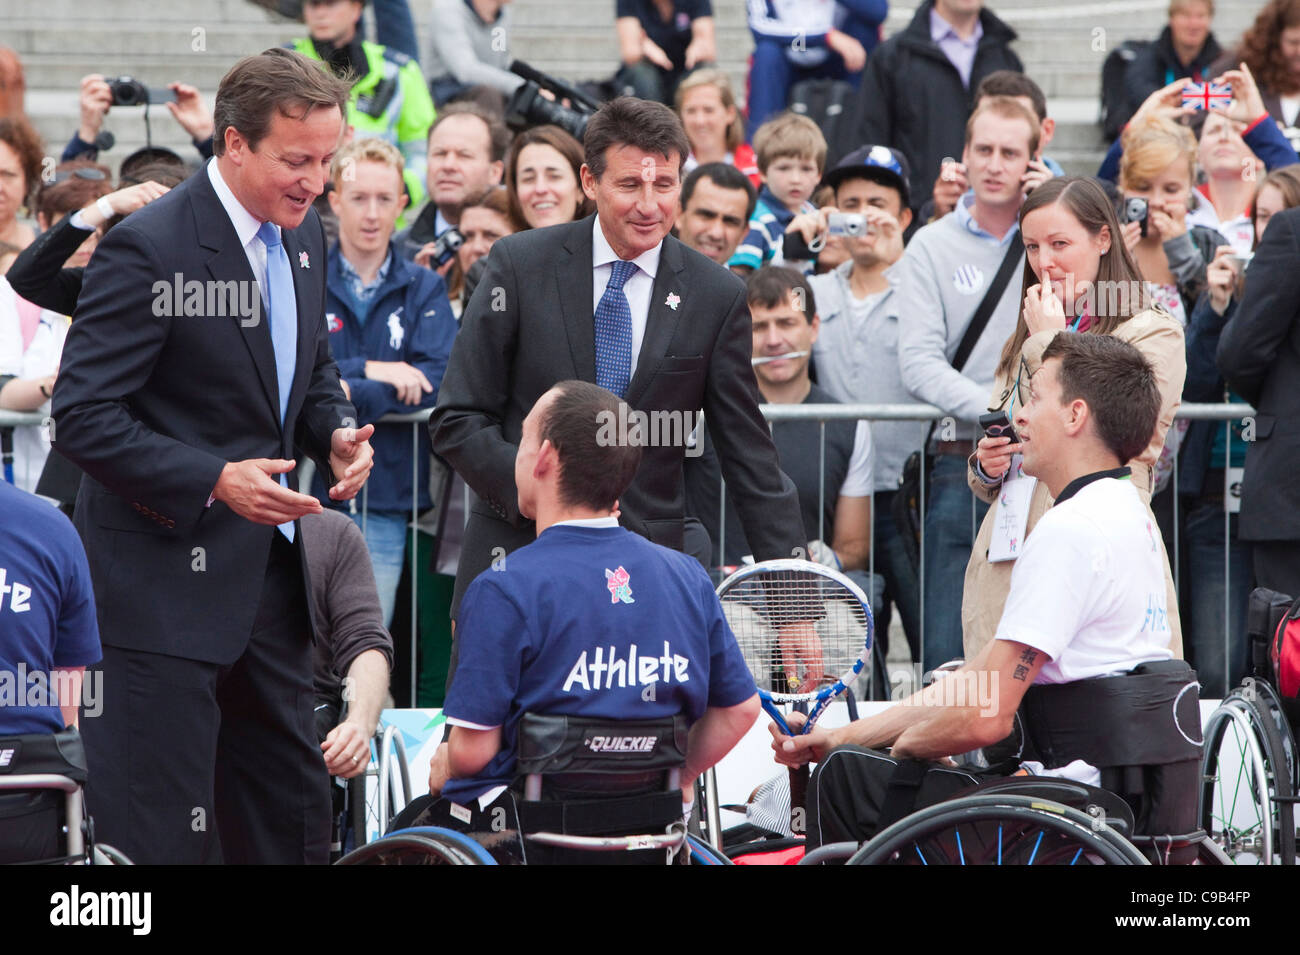 David Cameron and Sebastian Coe talking to wheelchair athletes on International Paralympics Day in Trafalgar Square, - Stock Image